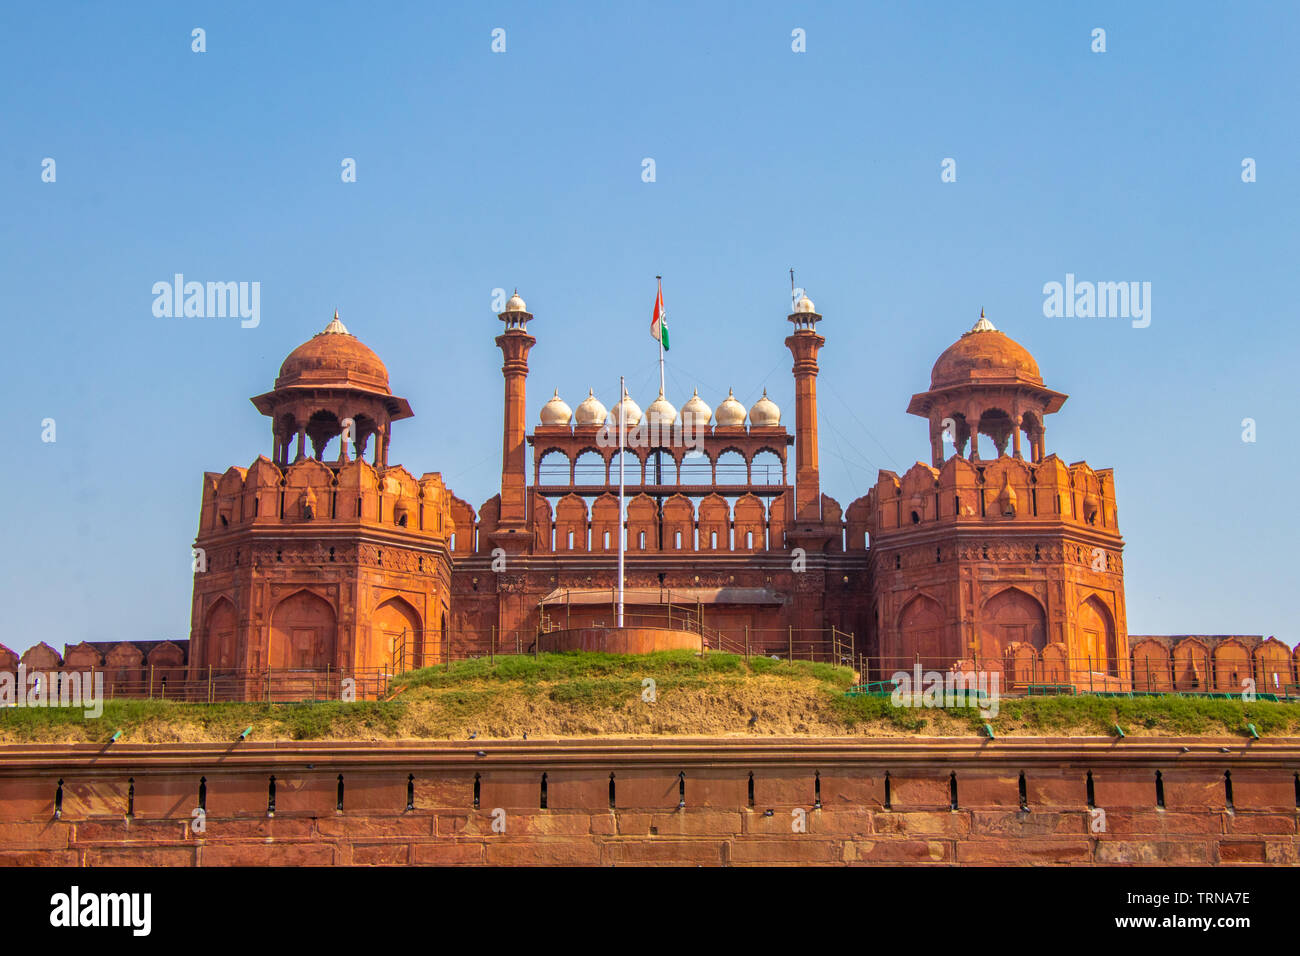 Red Fort (Lal Qila) in Delhi, India - Stock Image